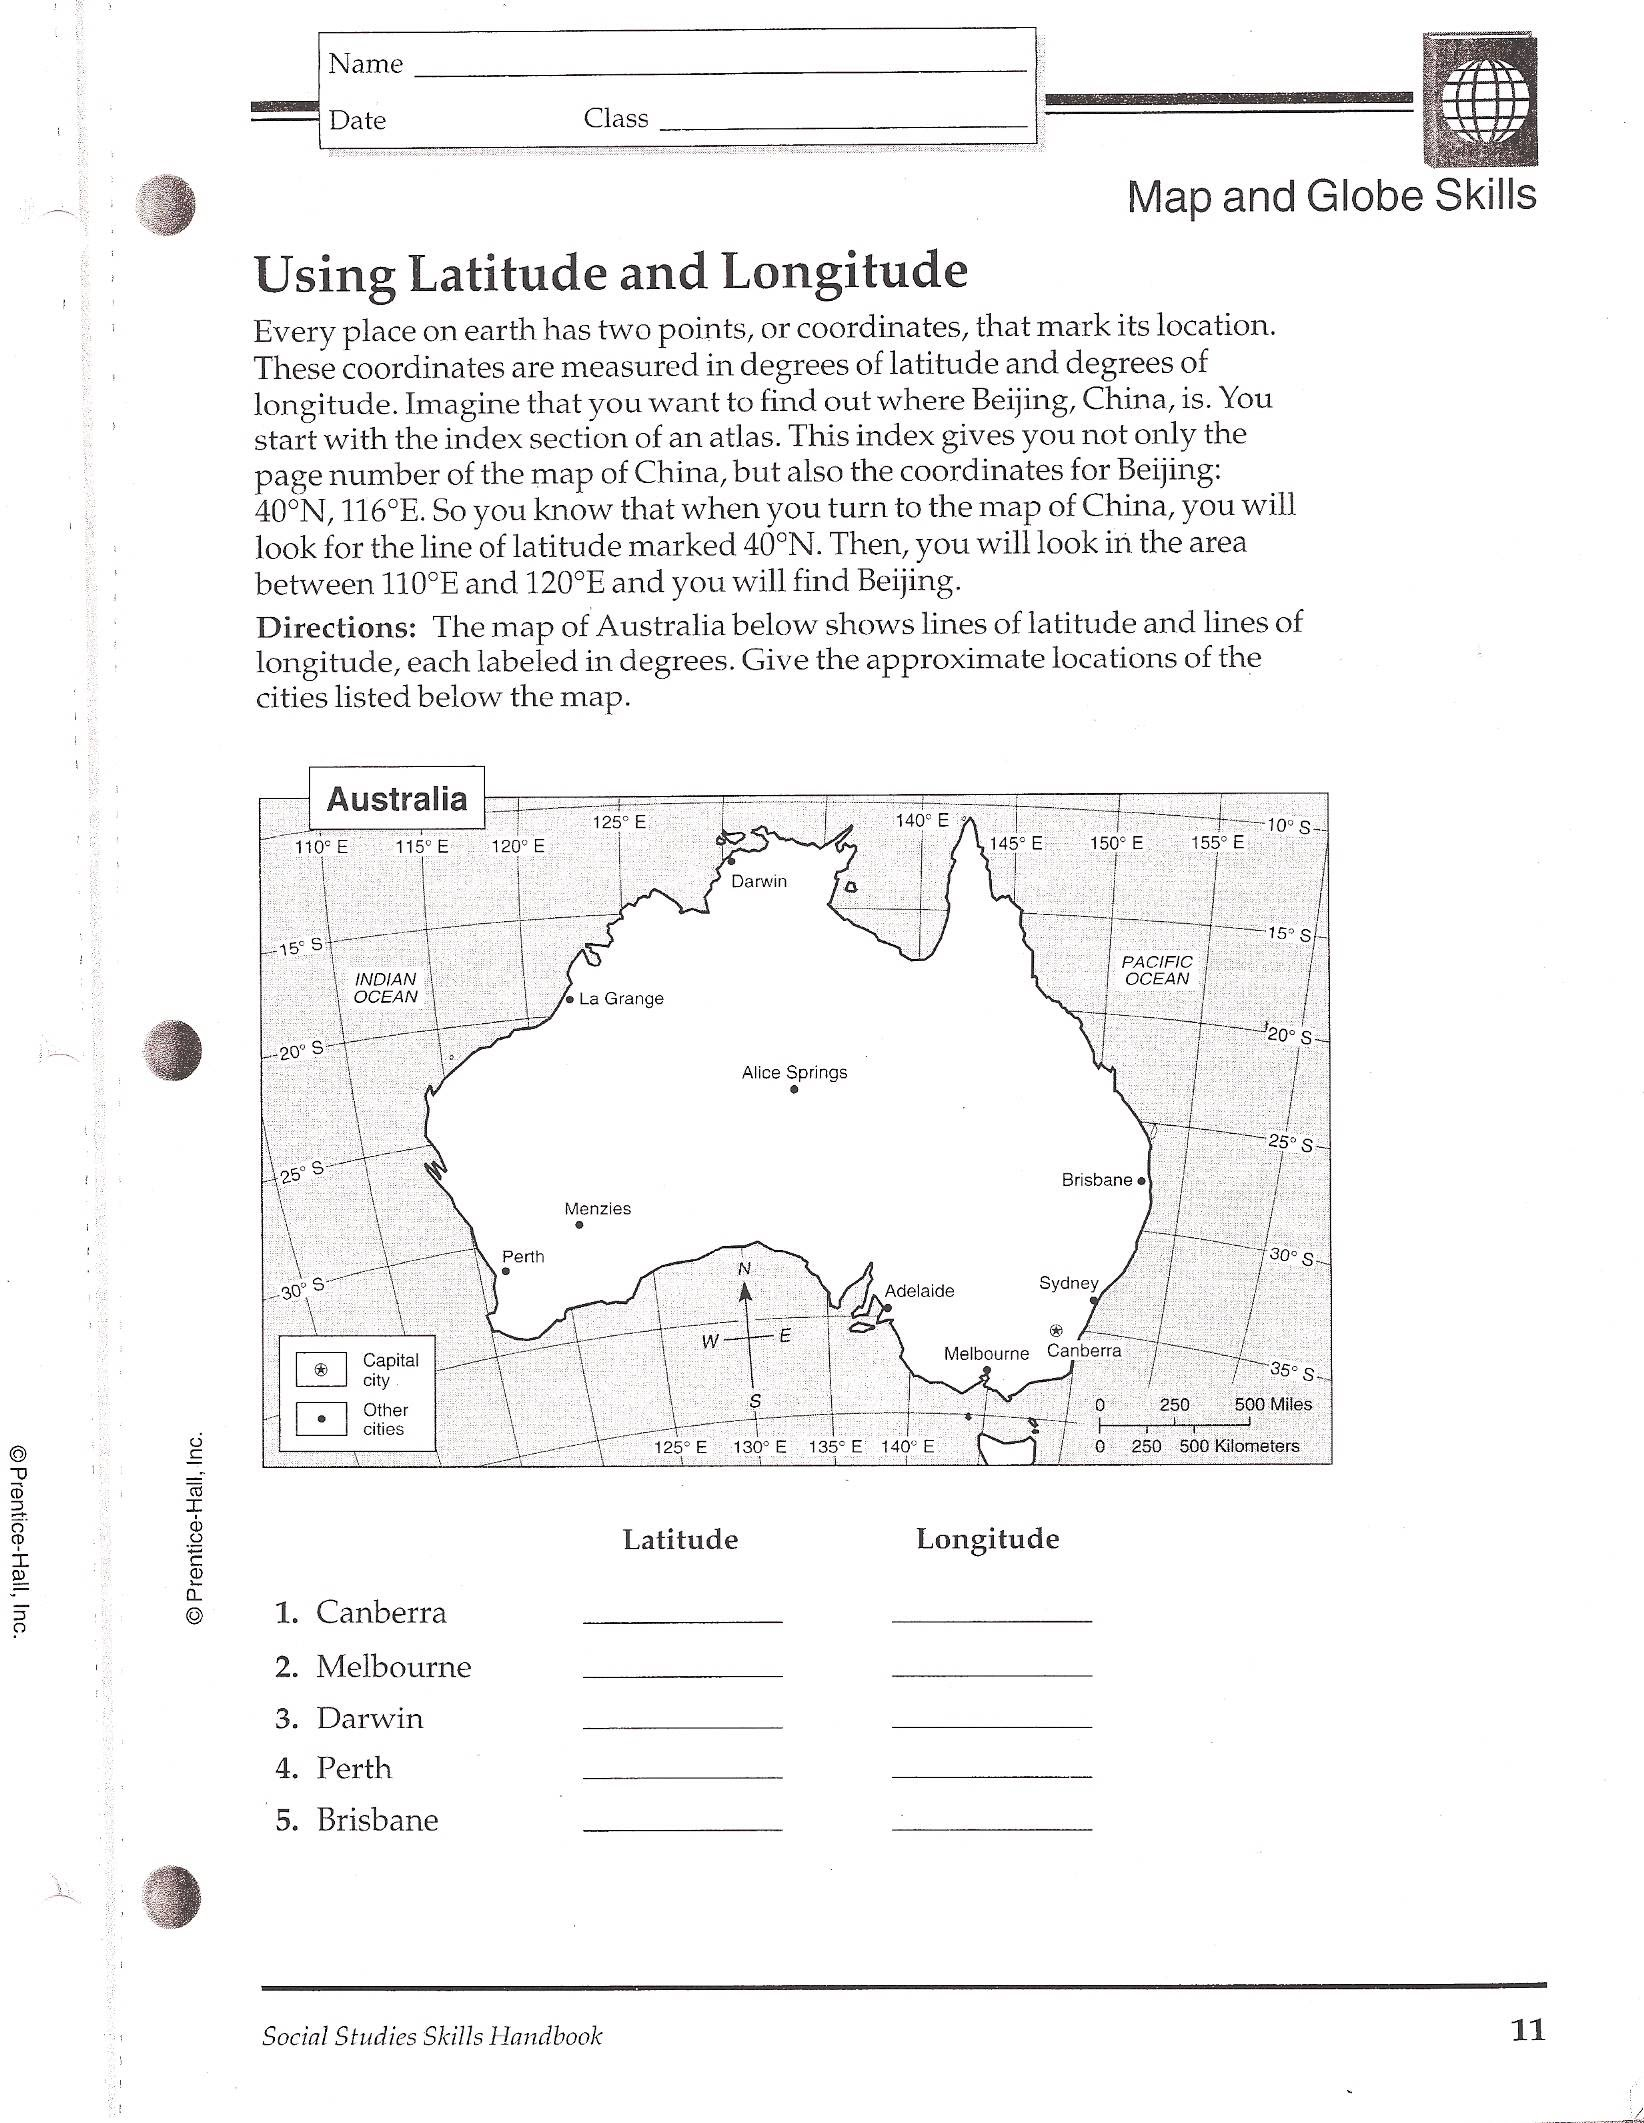 Free Worksheet Longitude And Latitude Practice Worksheets mrfordsclass latitude longitudequiz jpg